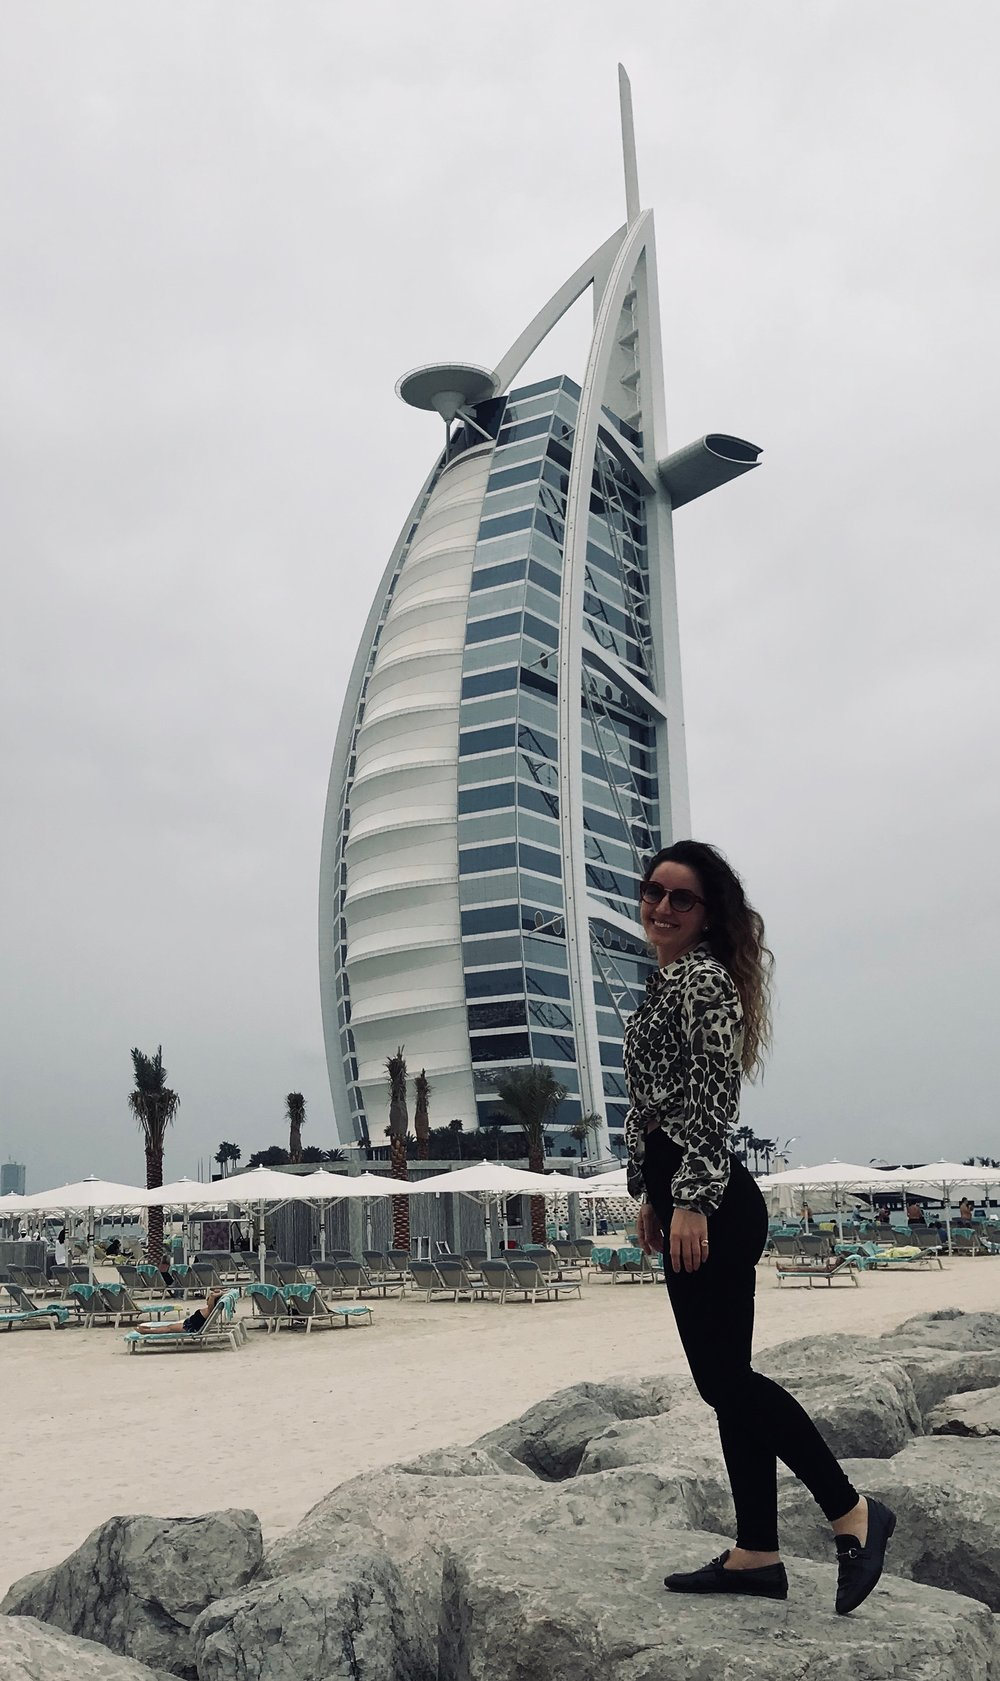 JUMEIRAH BEACH HOTEL • DUBAI, UAE PHOTOGRAPHER: TINA